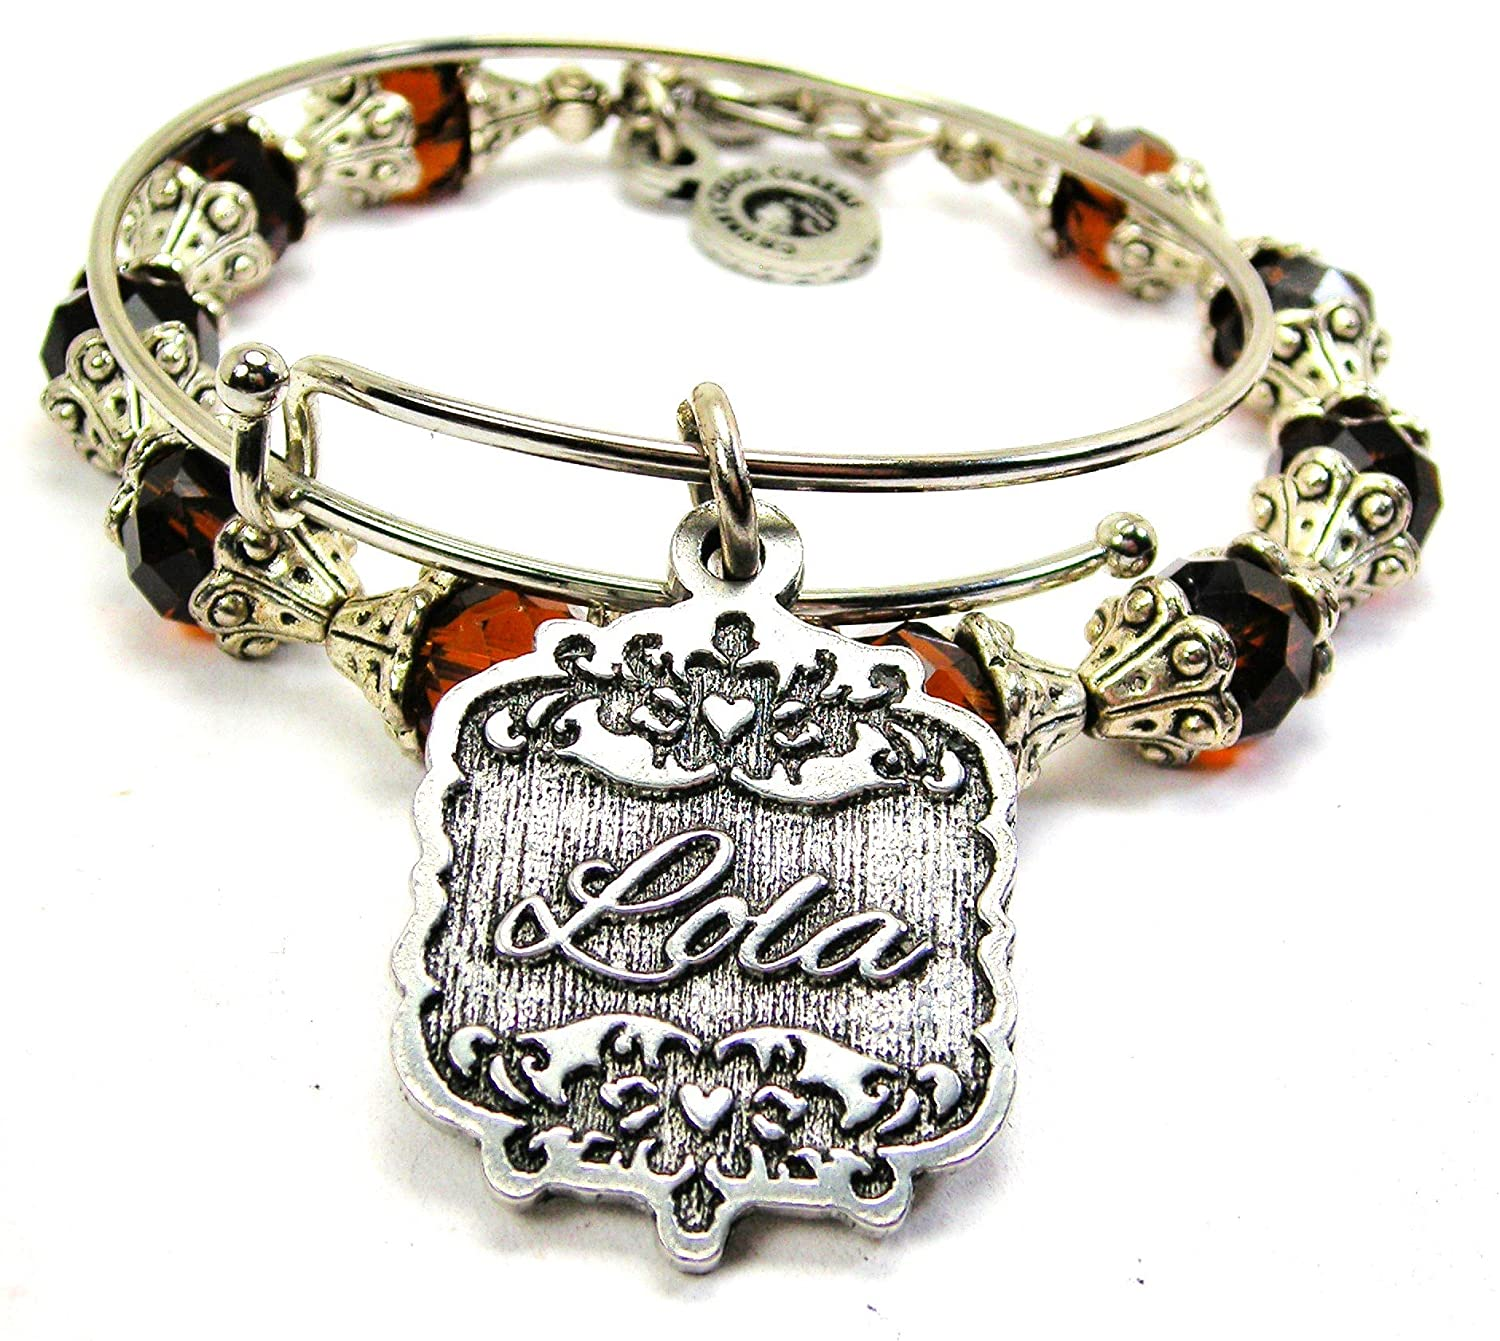 Chubby Chico Charms Lola Victorian Scroll Capped Crystal Bracelet in Chocolate Brown